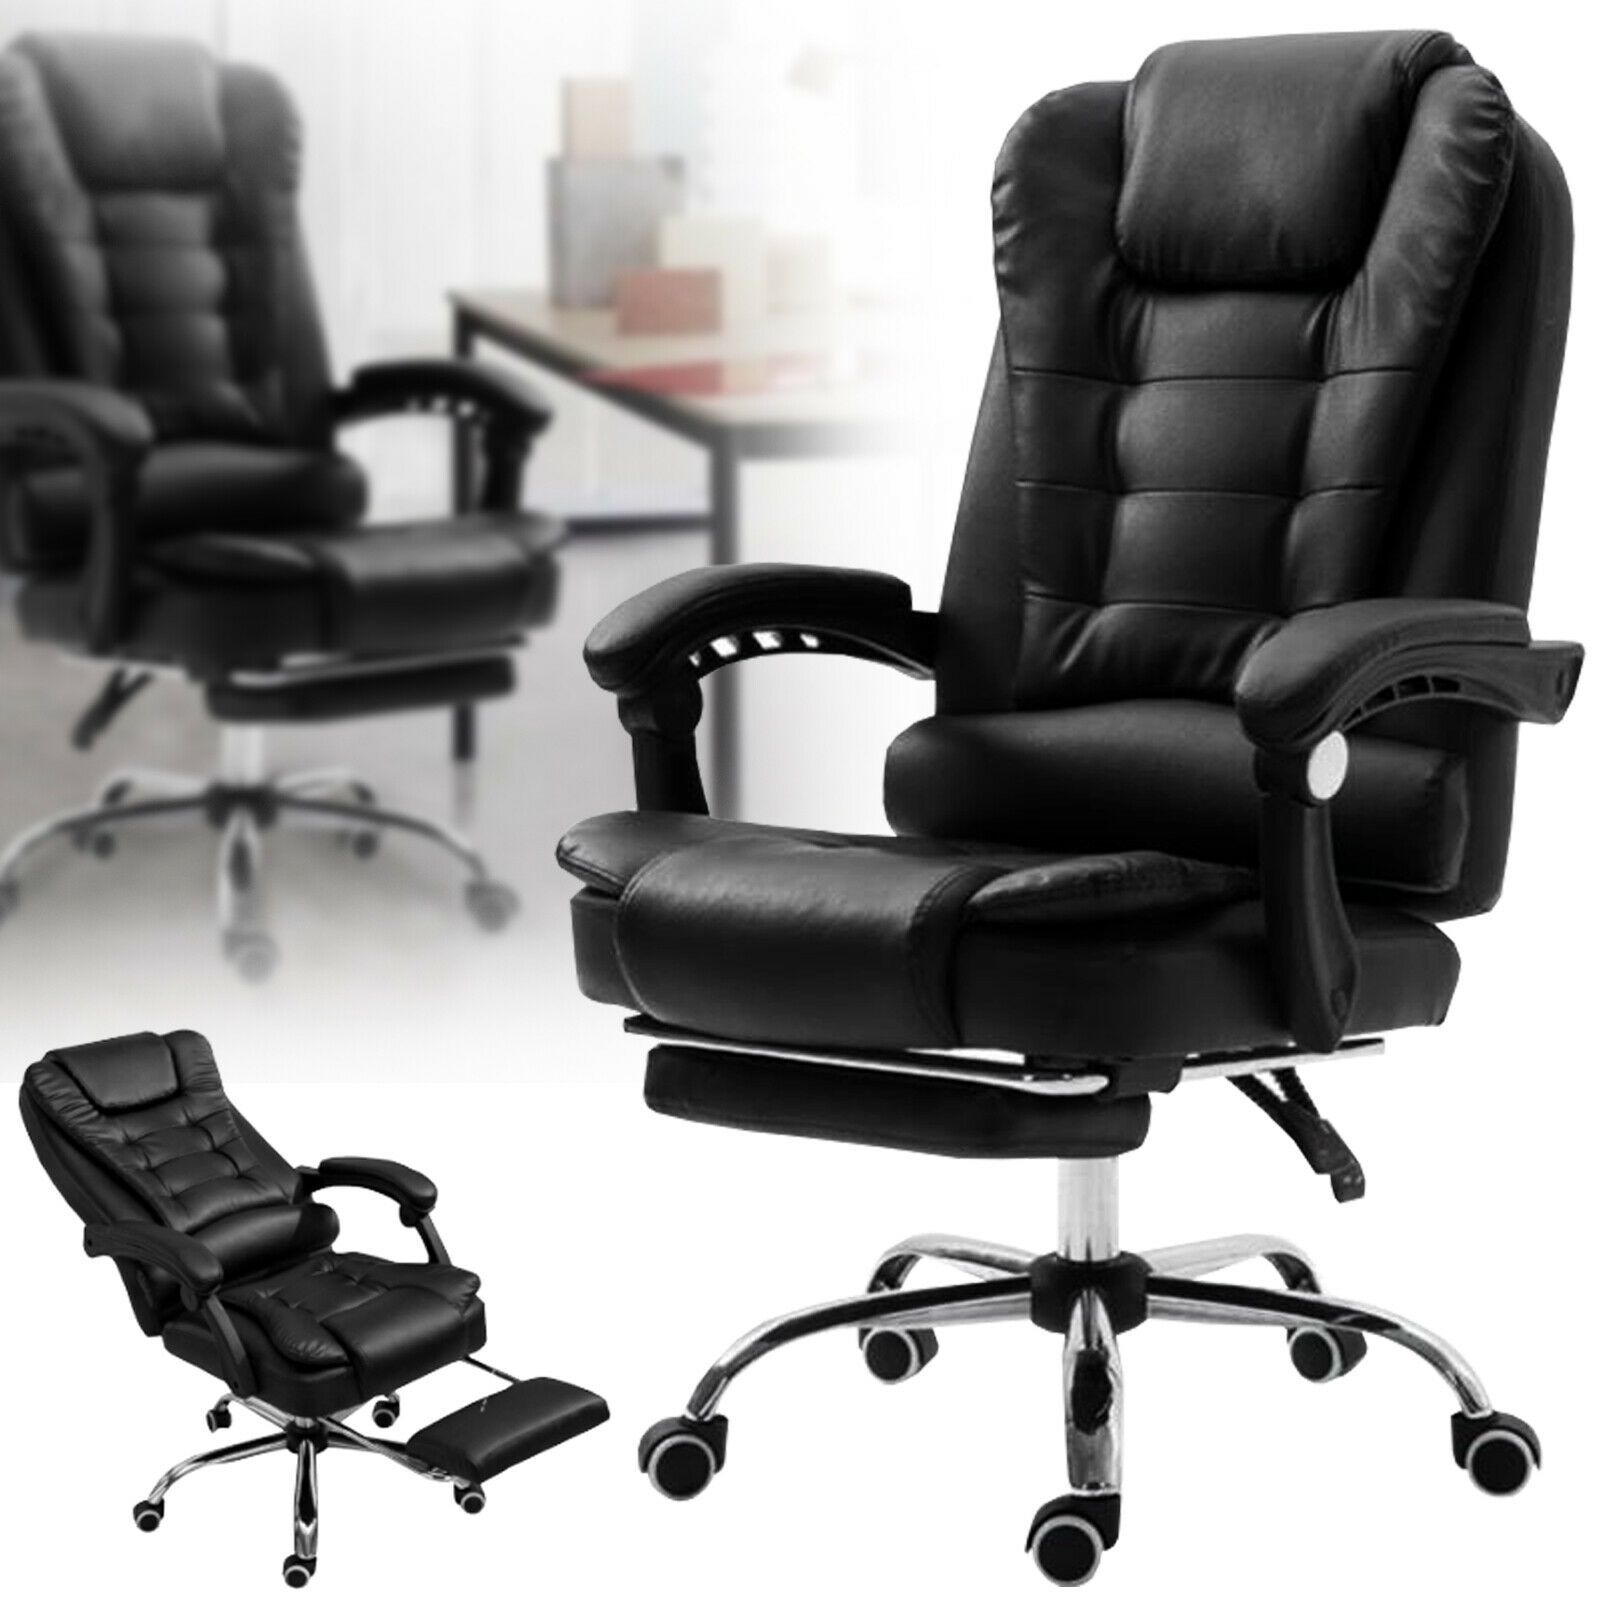 Executive Racing Gaming Chair Computer Office Leather